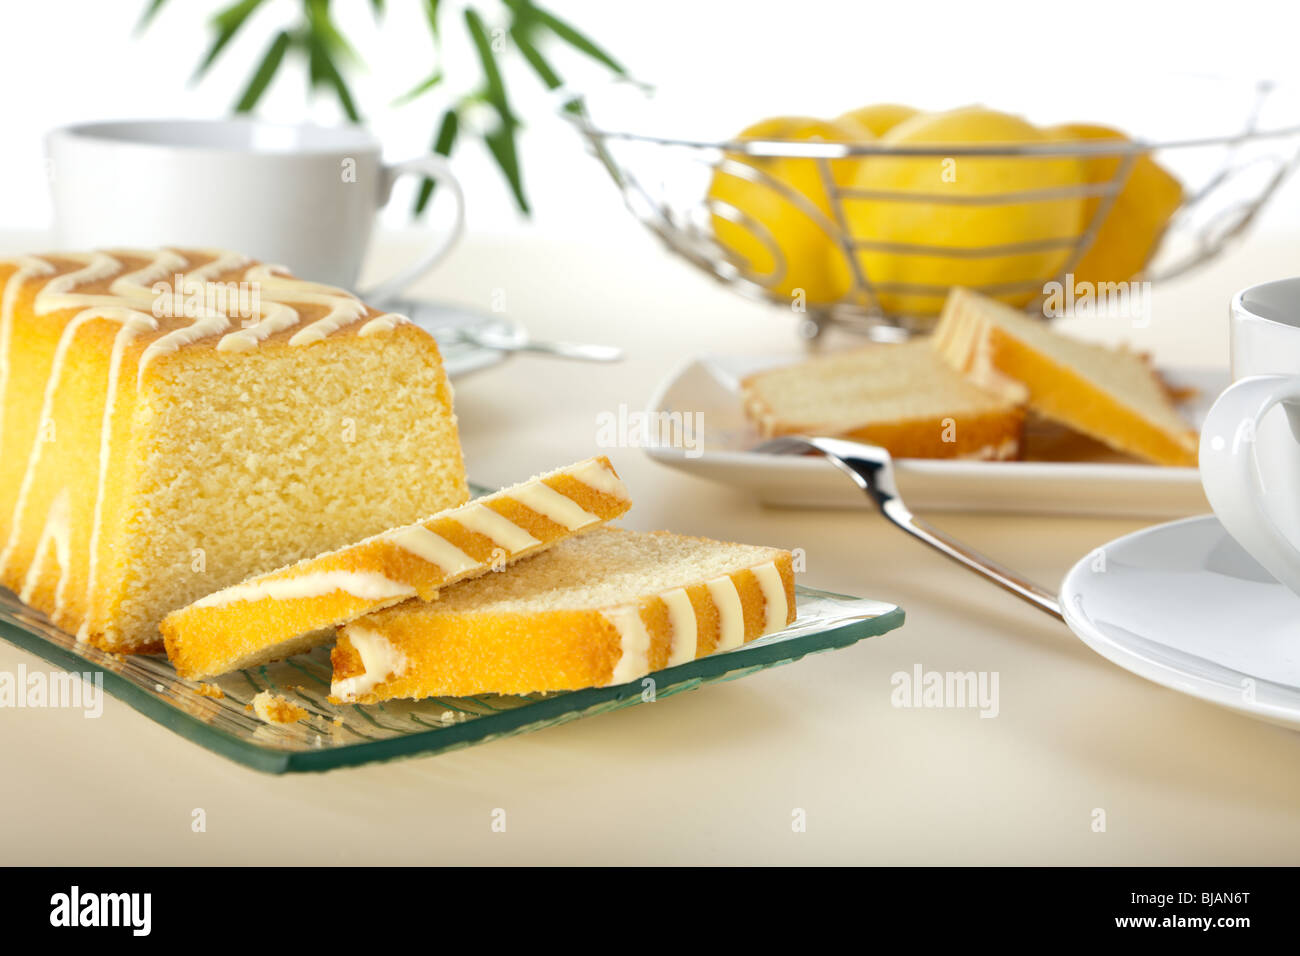 lemon cake and slices on coffee table - Stock Image